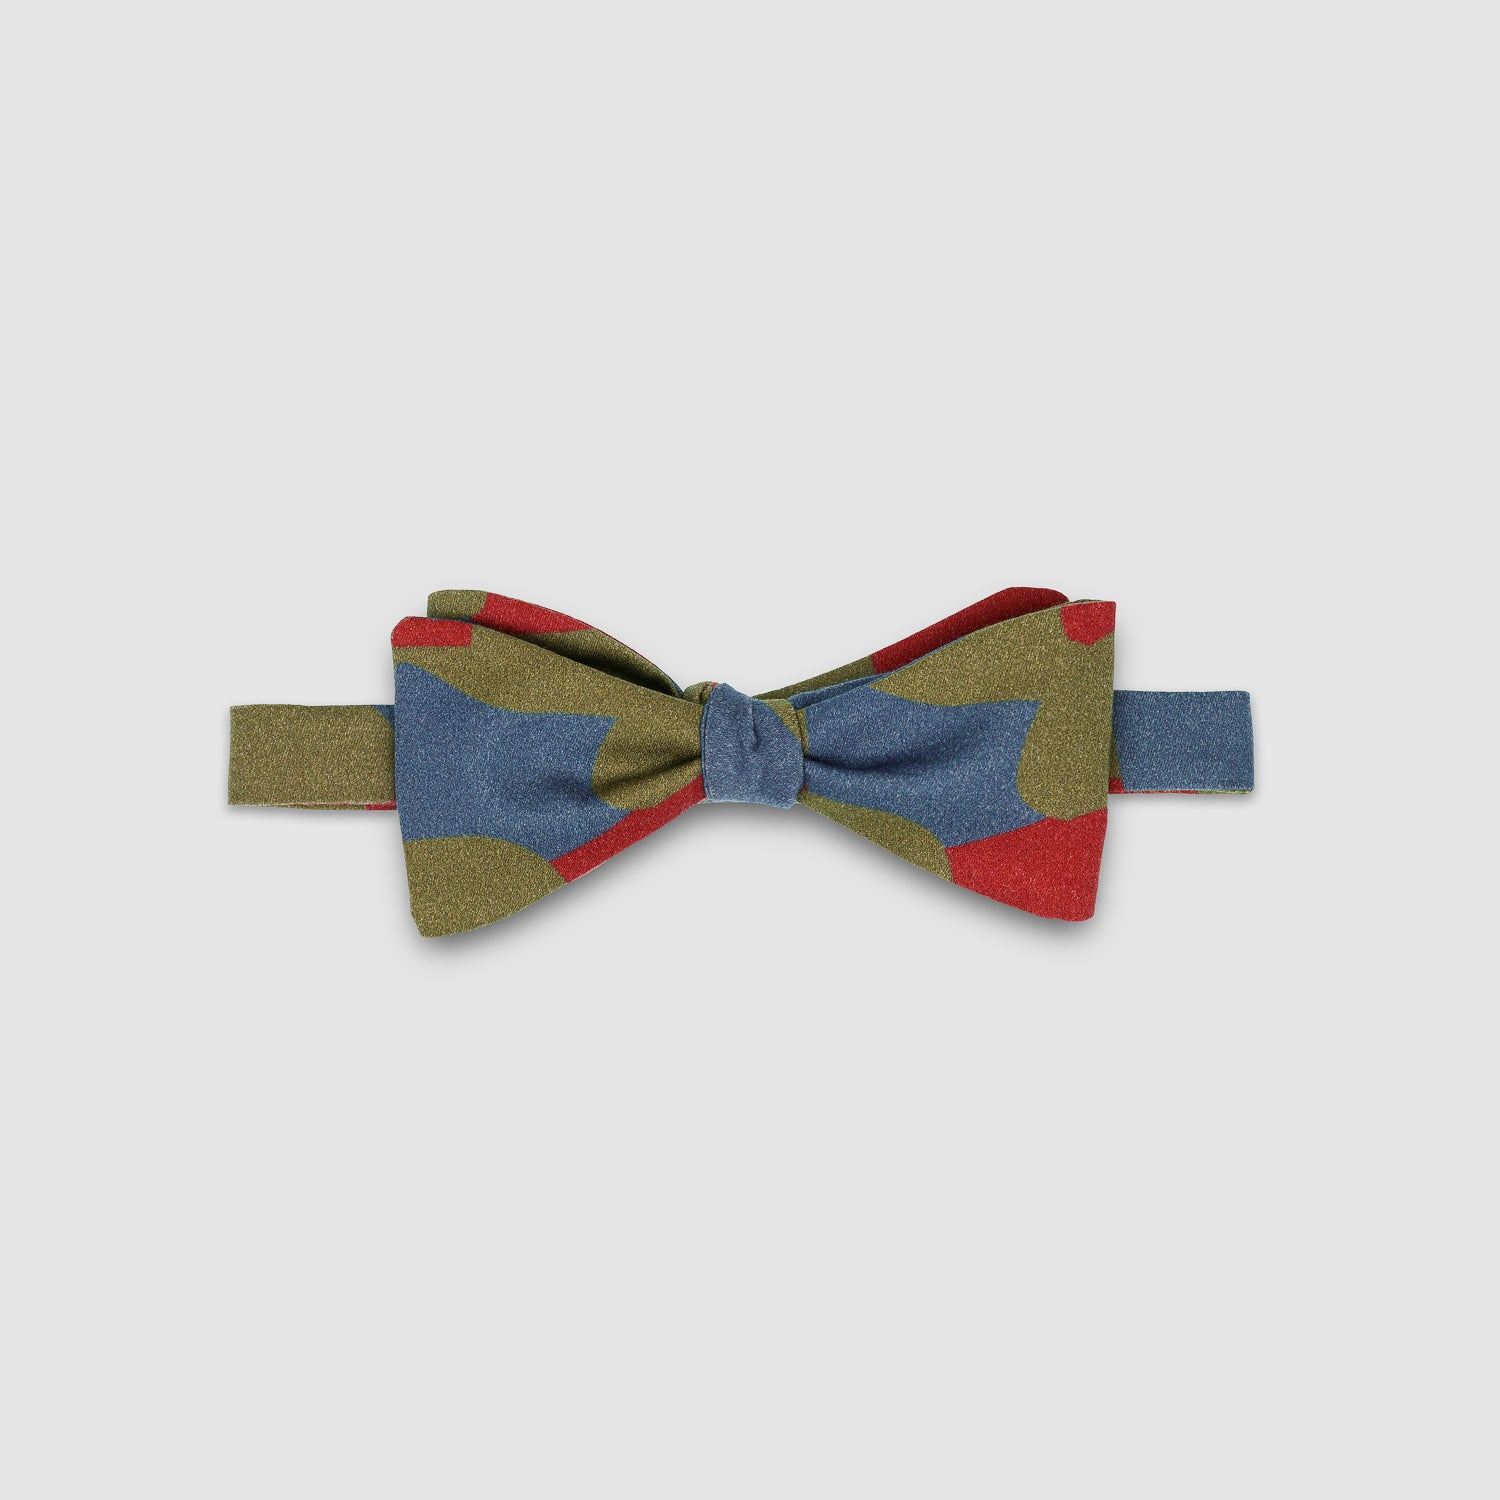 CHARLY - the bow tie